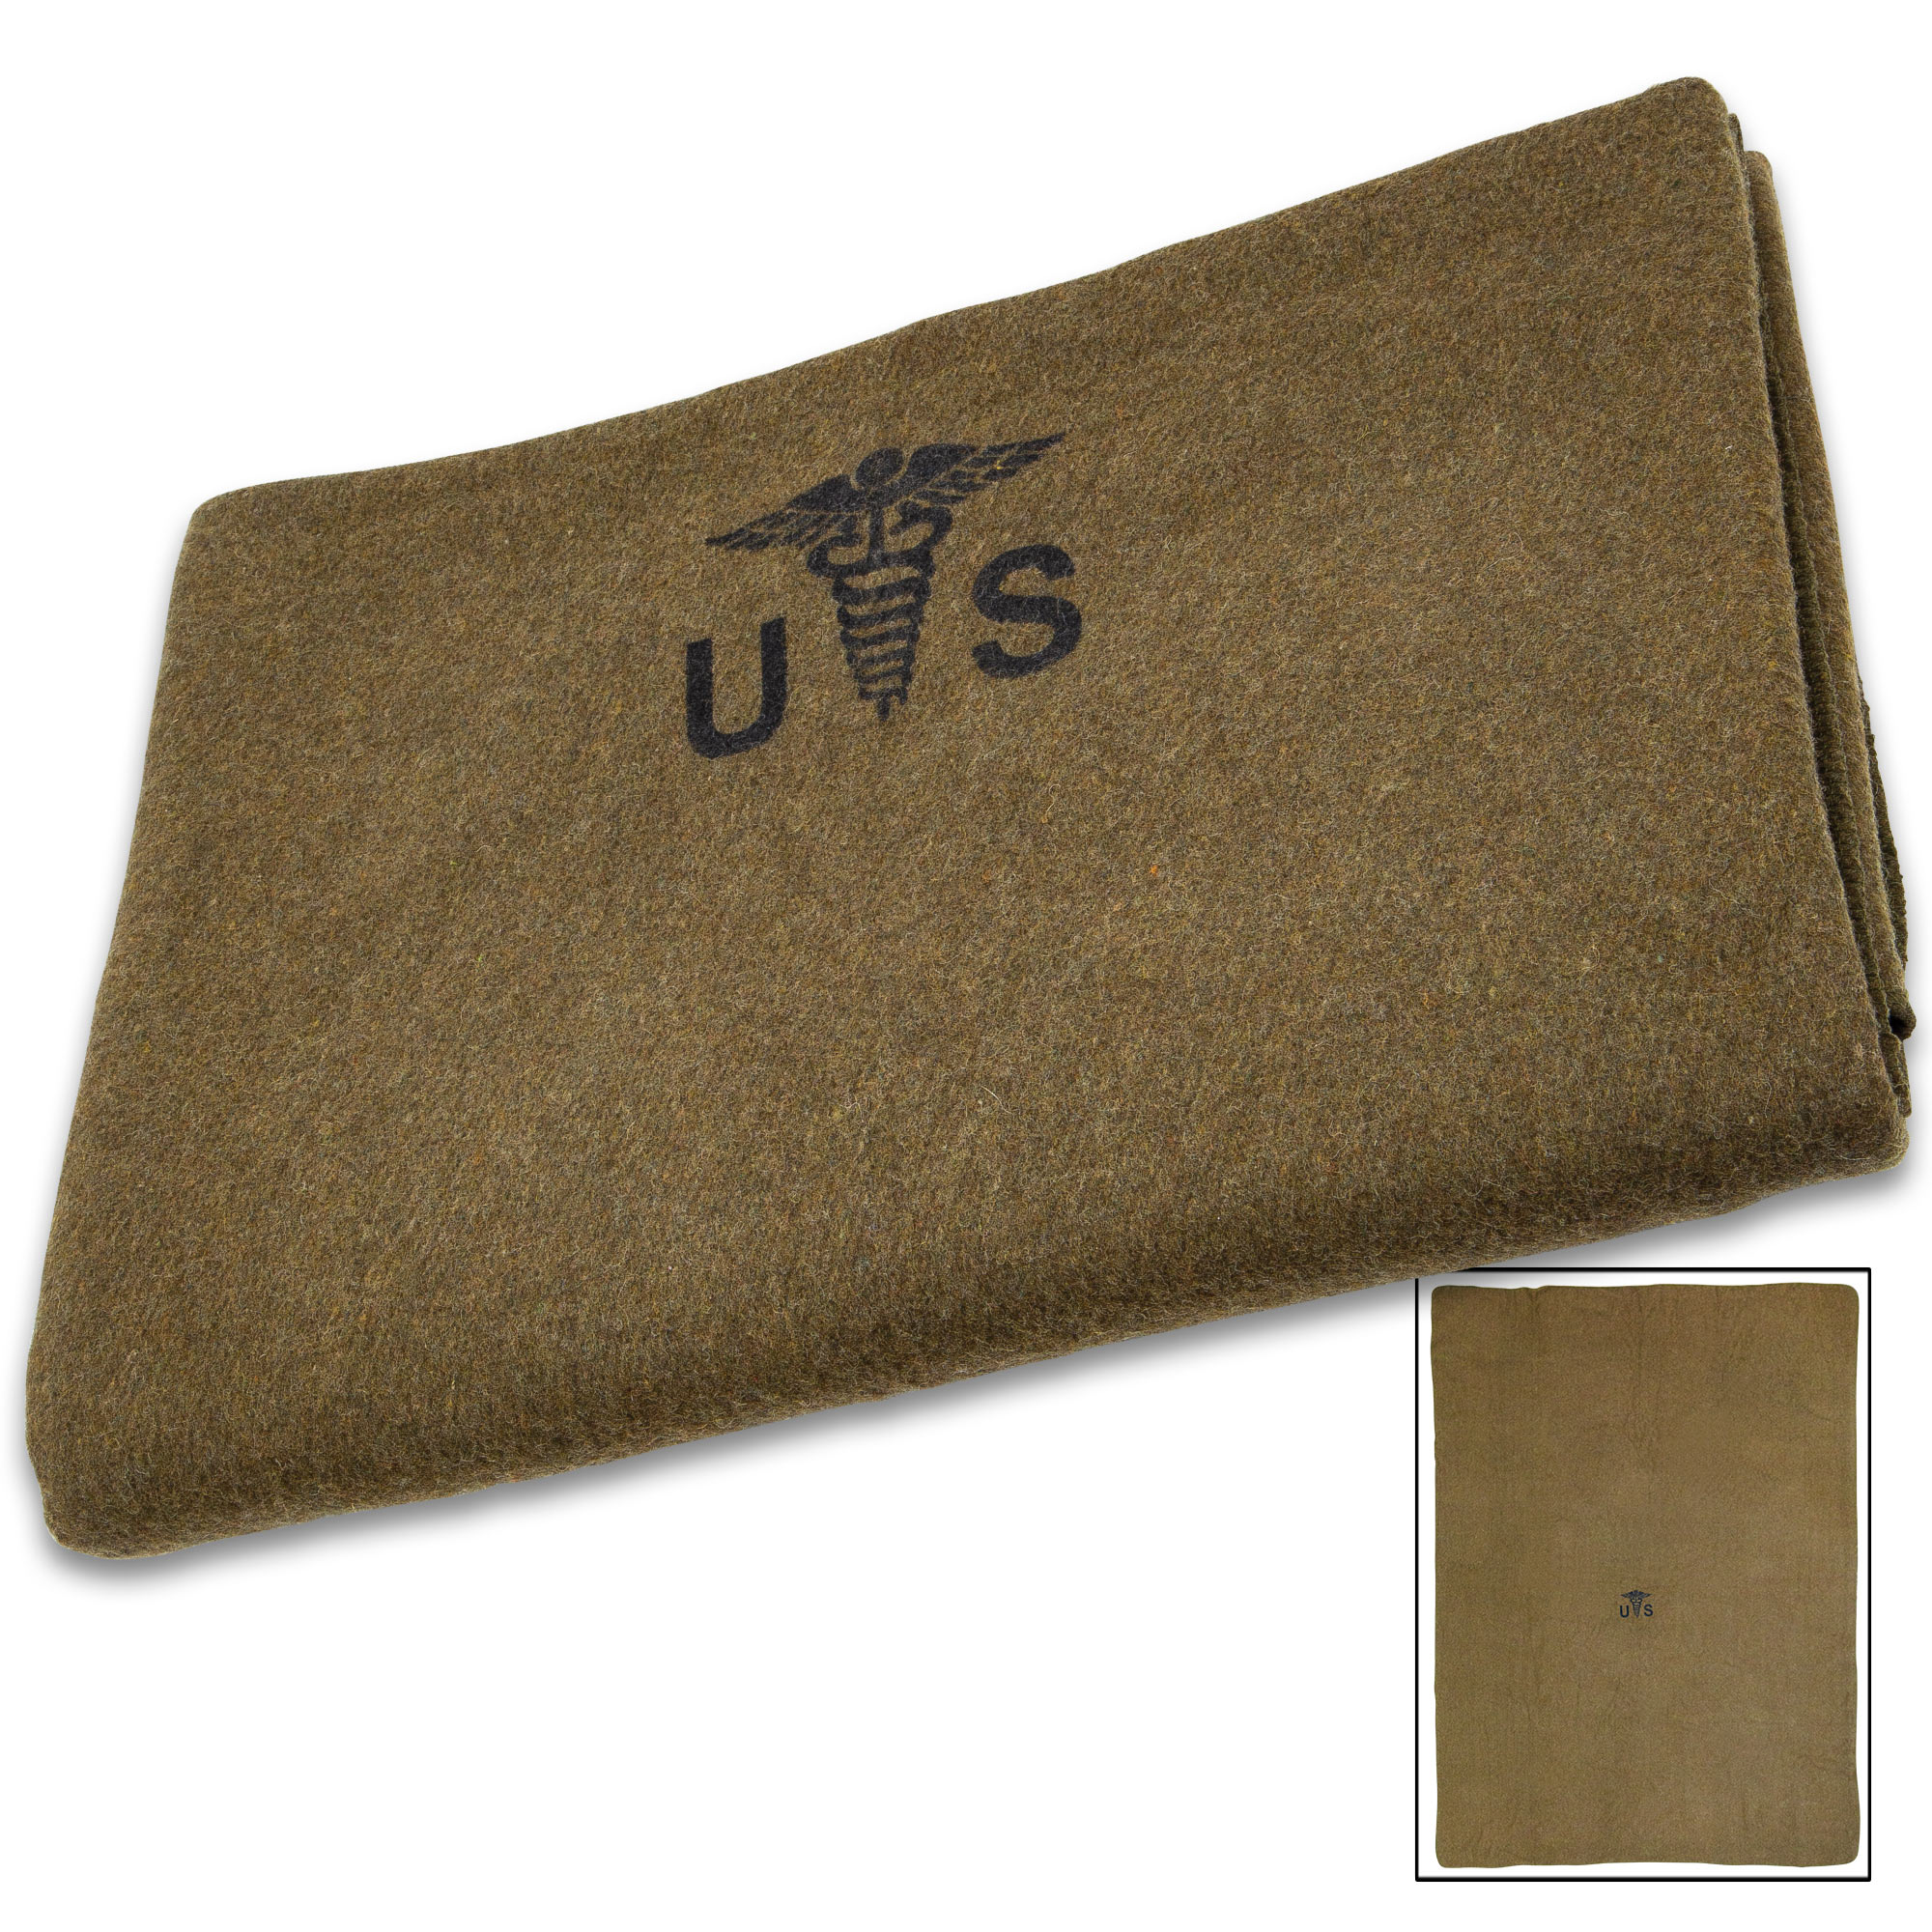 4lb Wool Blanket Olive Drab Green Warm Army Military Emergency Survival Camping